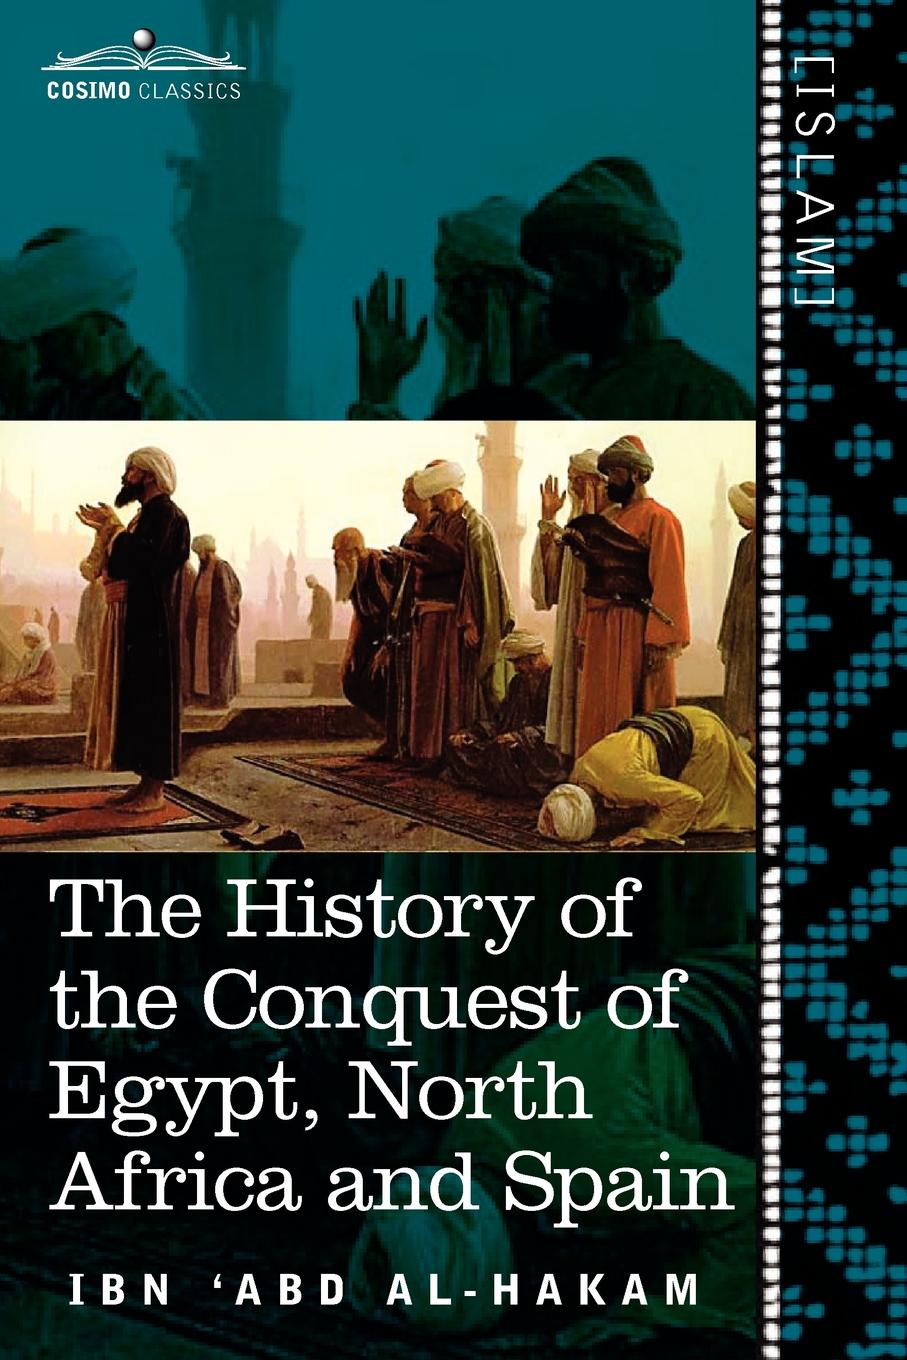 Ibn 'Abd Al-Hakam, Charles Cutler Torrey The History of the Conquest of Egypt, North Africa and Spain. Known as the Futuh MIS R of Ibn Abd Al-H Akam browne abdullah bonaparte in egypt and the egyptians of to day